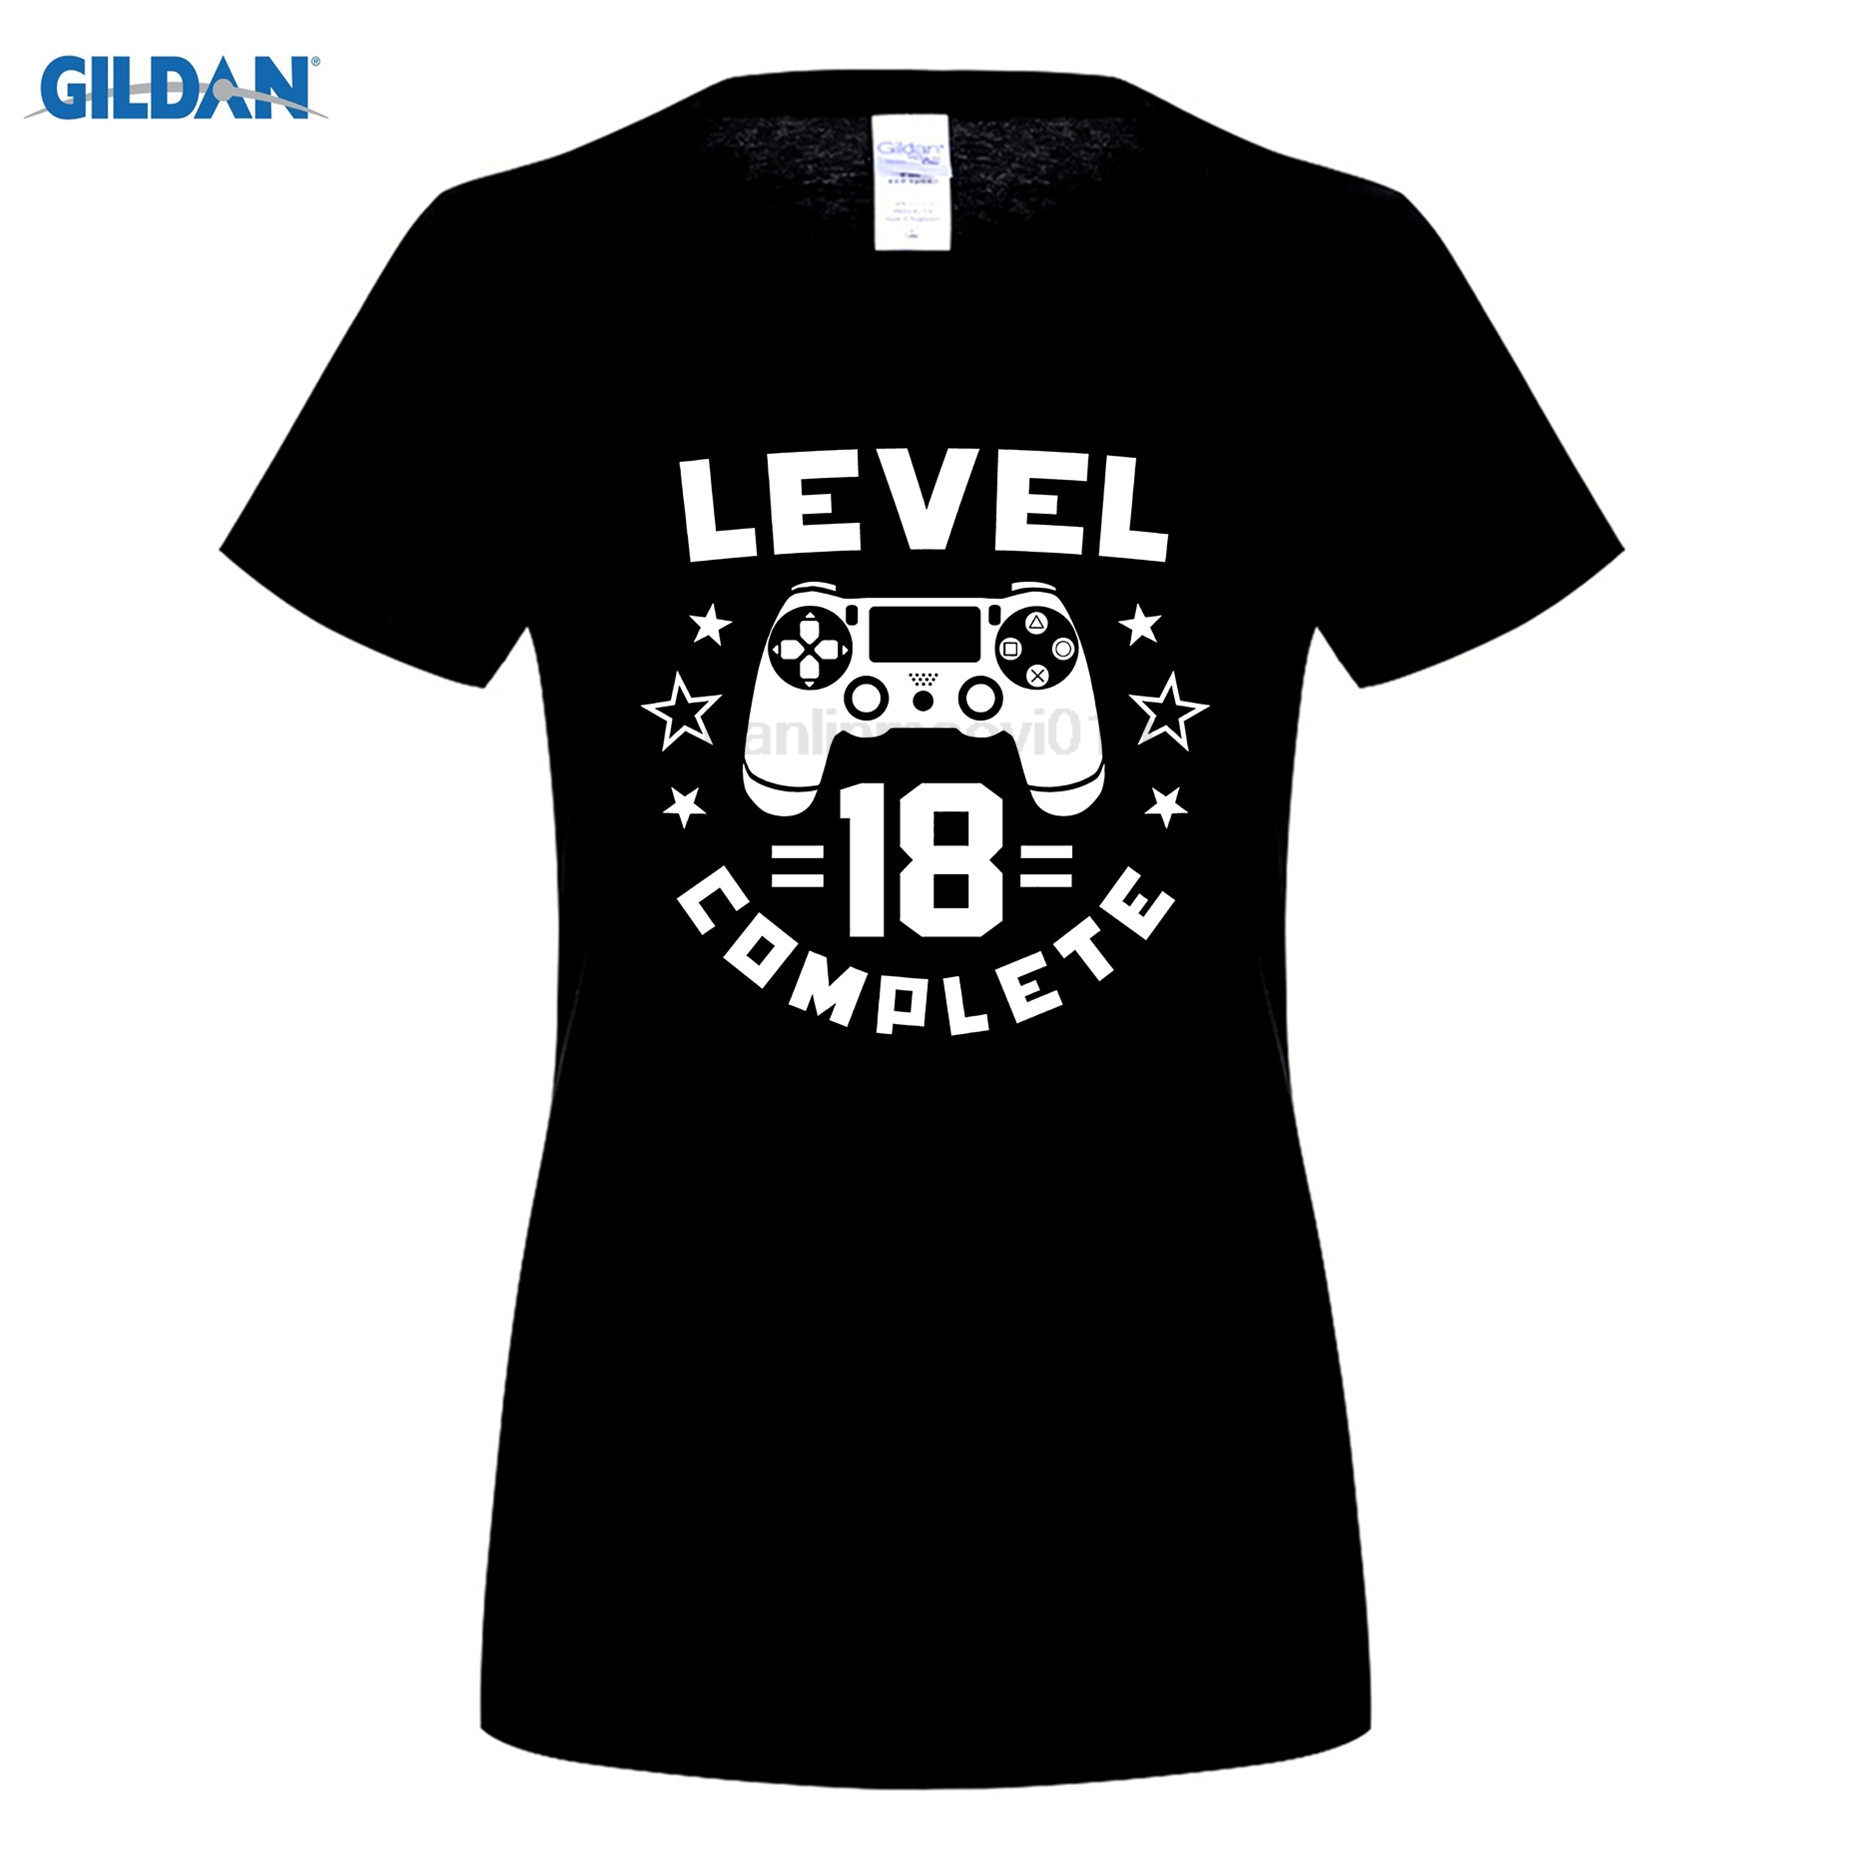 GILDAN Level 18 Complete Video Gamer Geek Boys 18th Birthday Shirt Latest Fun T-shirt To ...